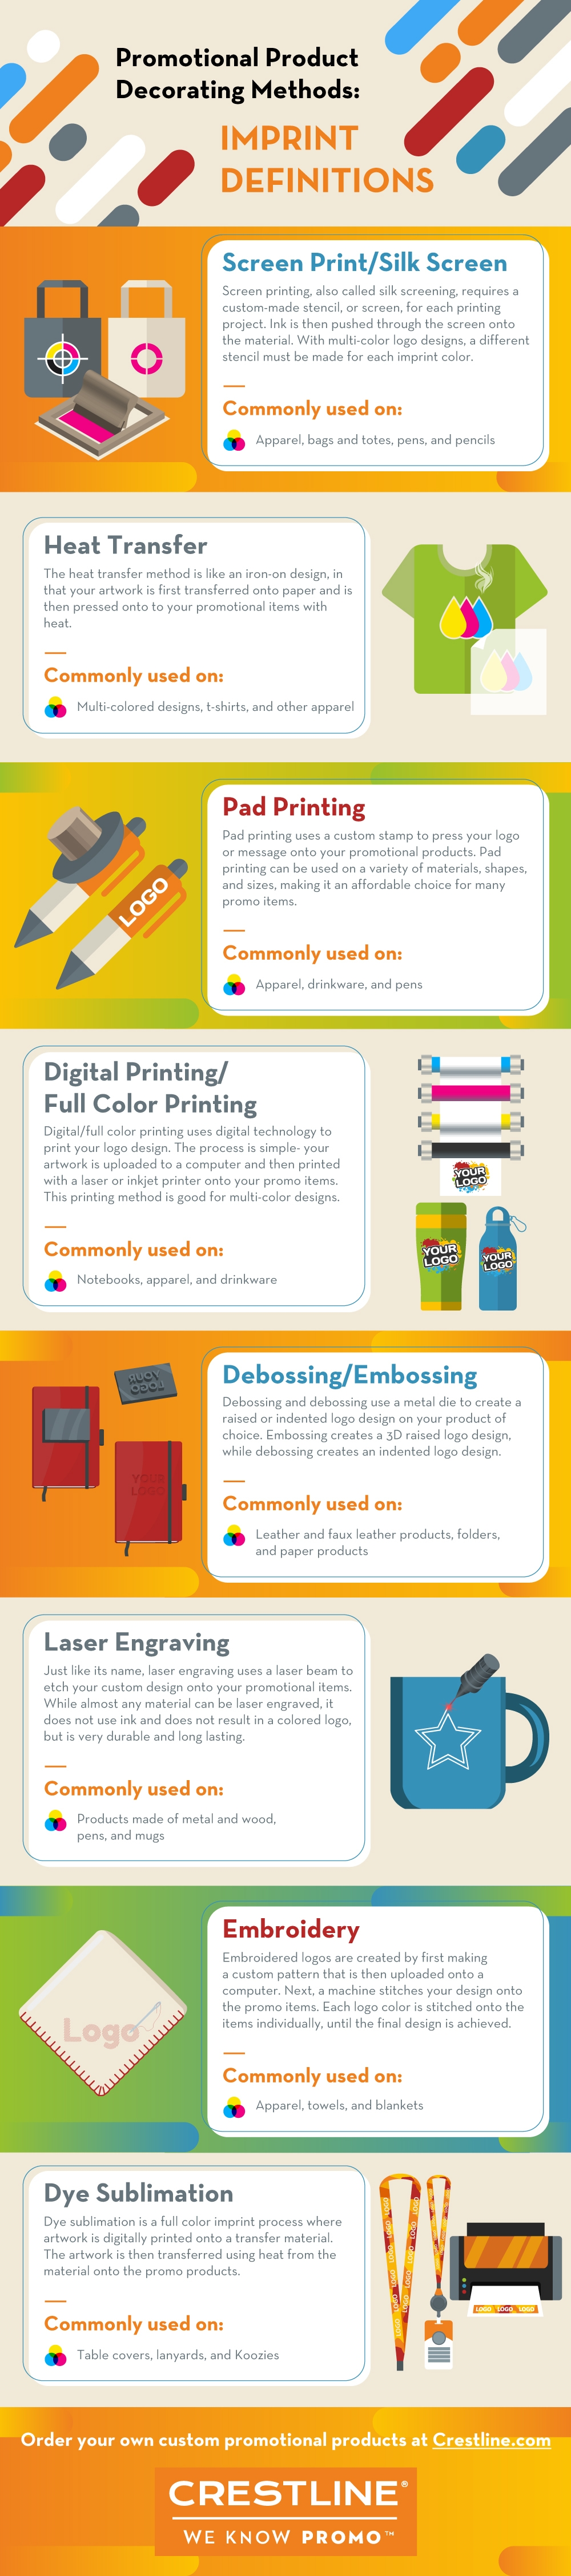 Promotional product imprint method definitions